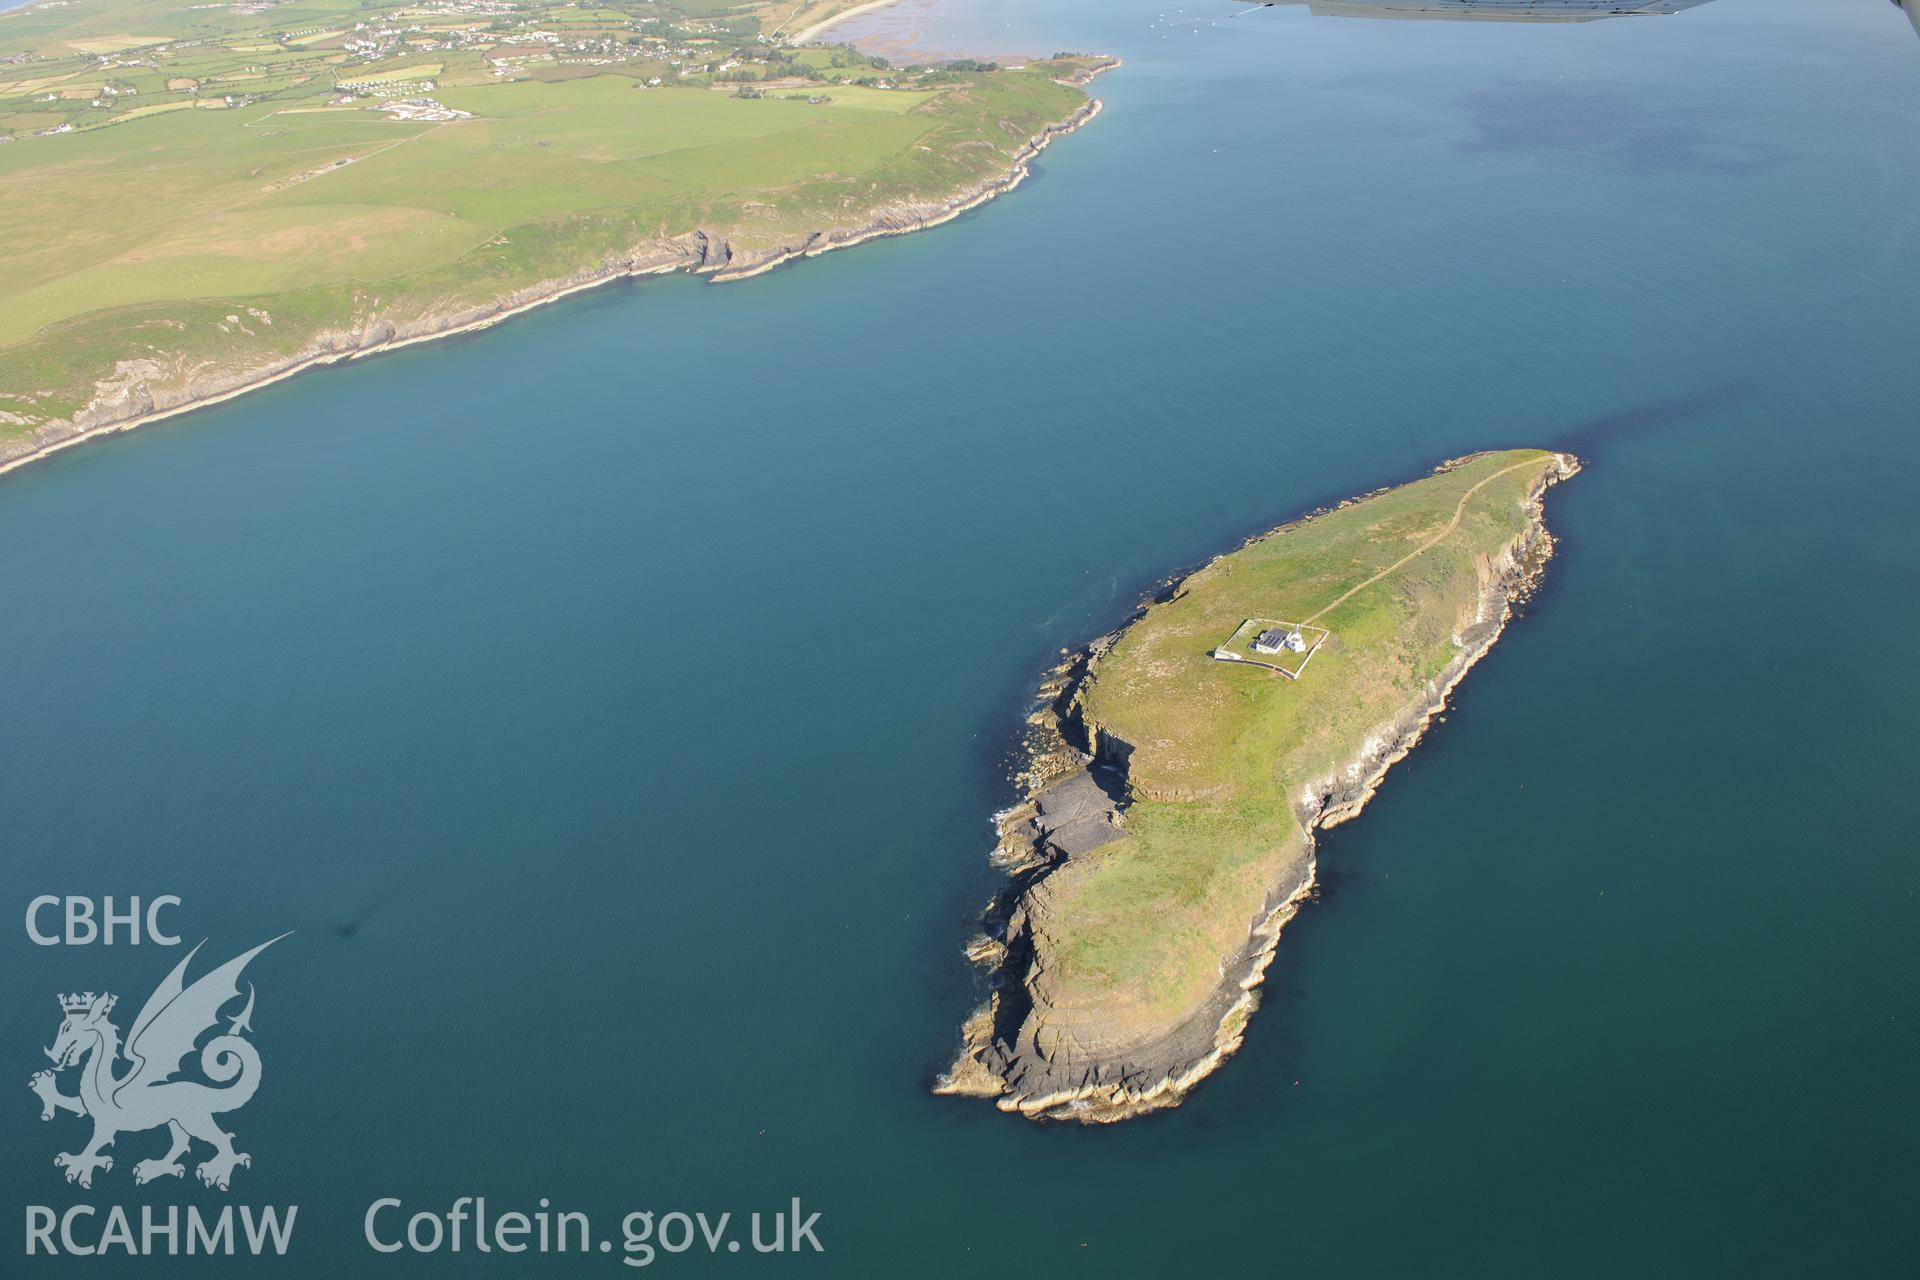 St Tudwal's Island West, its lighthouse and St Tudwal's Sound. Oblique aerial photograph taken during the Royal Commission's programme of archaeological aerial reconnaissance by Toby Driver on 23rd June 2015.